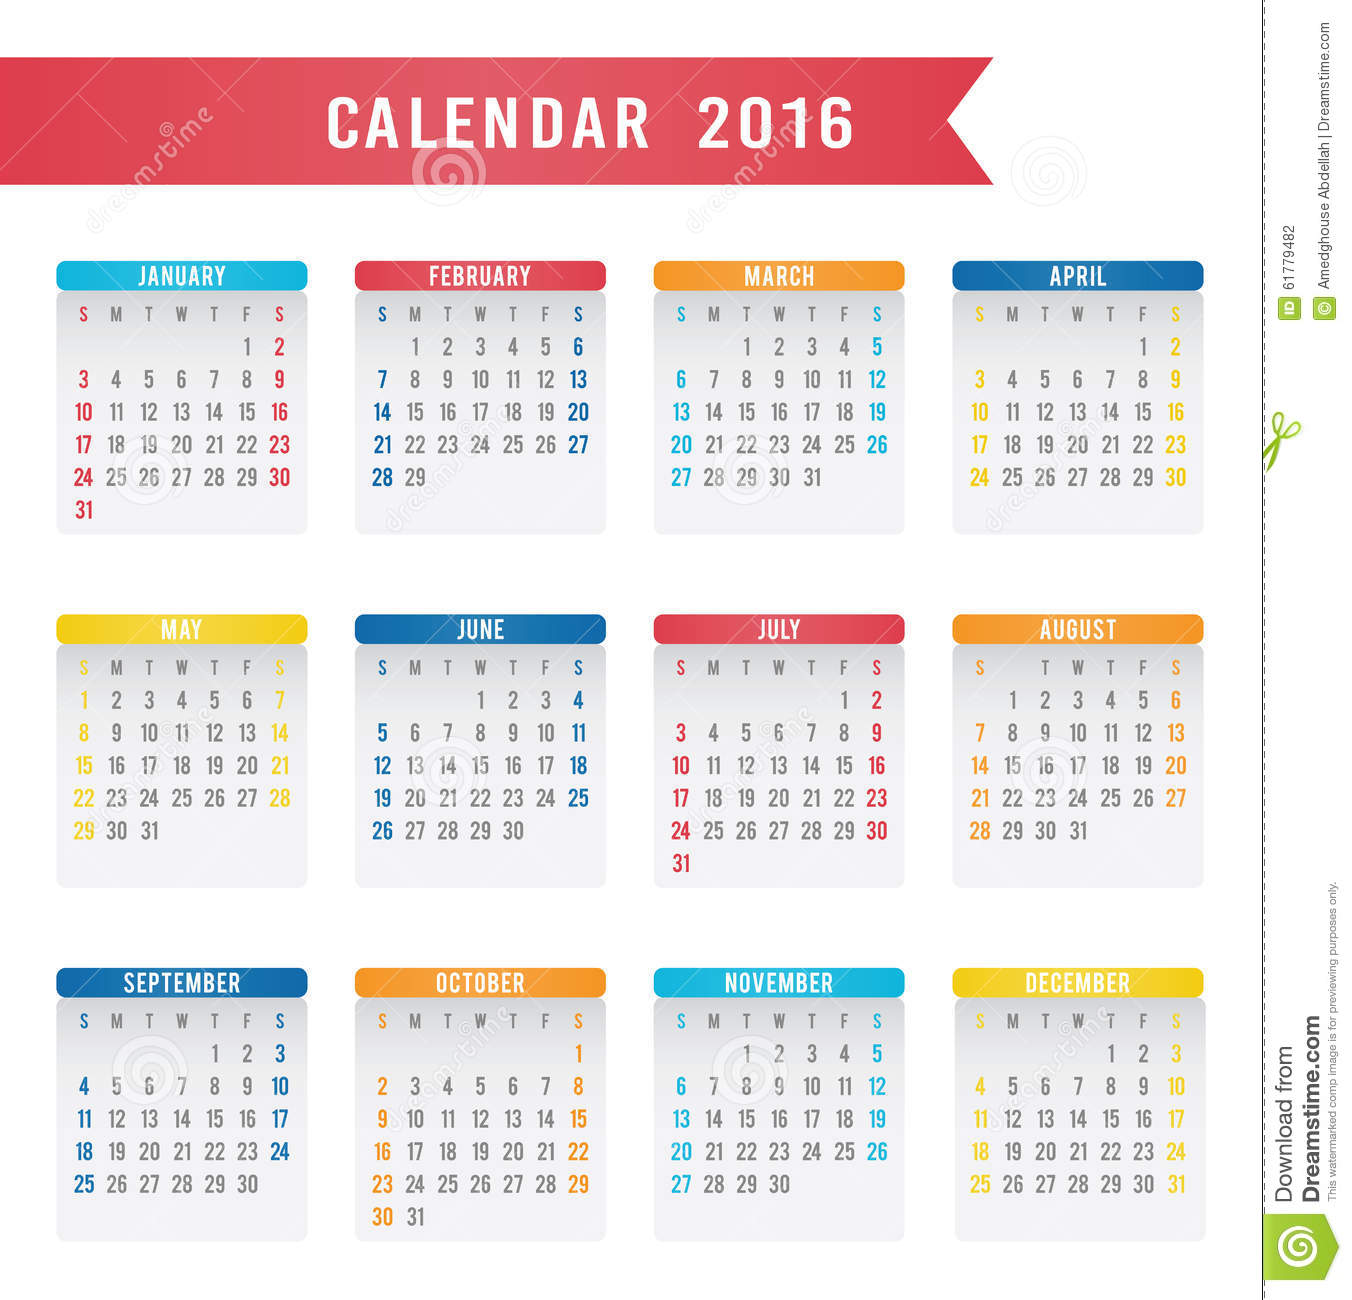 Illustration Calendar Design : English calendar design stock illustration image